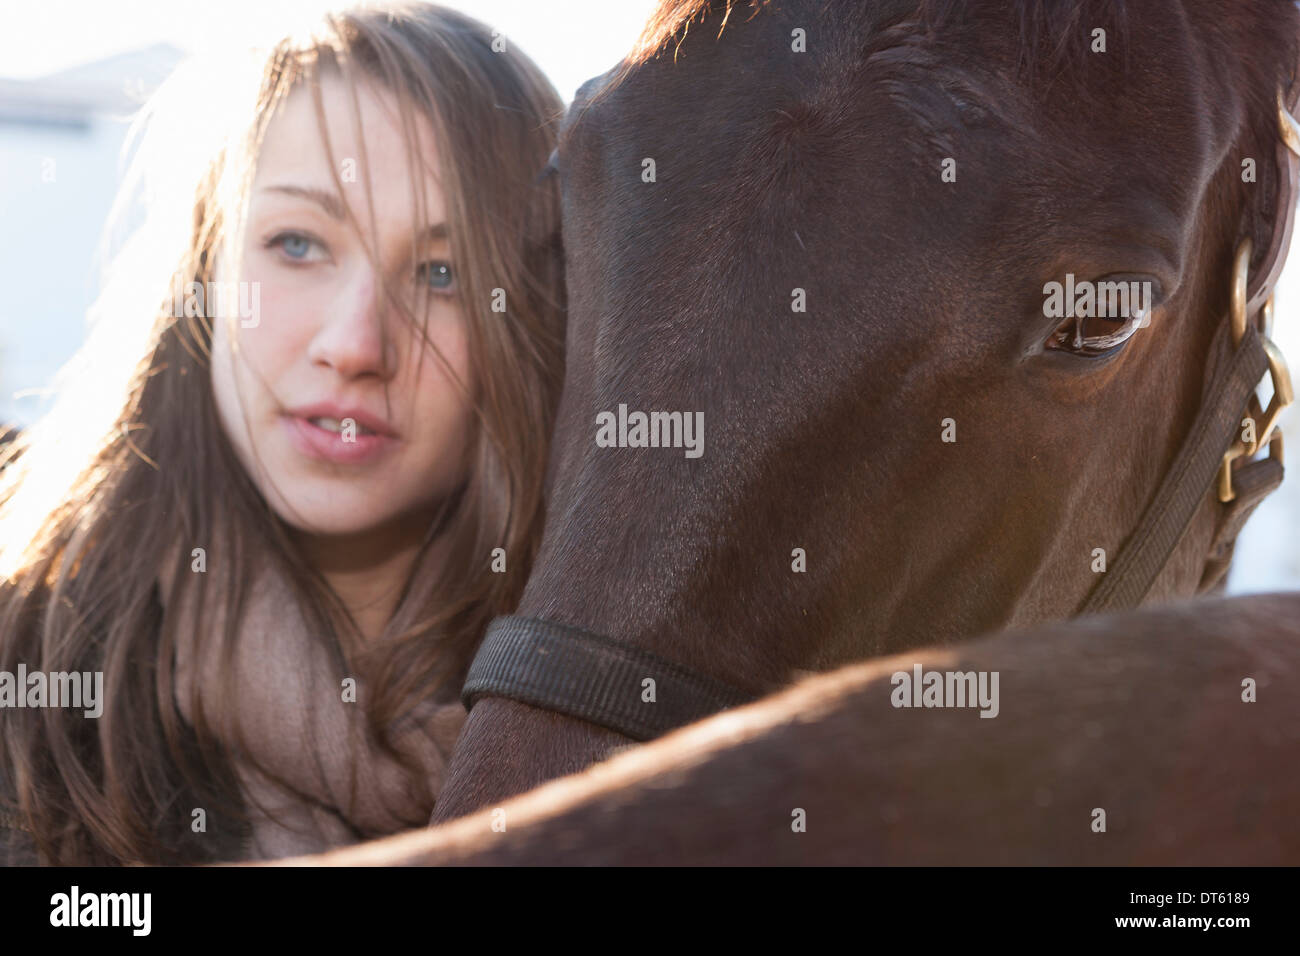 Close up of young woman with horses - Stock Image